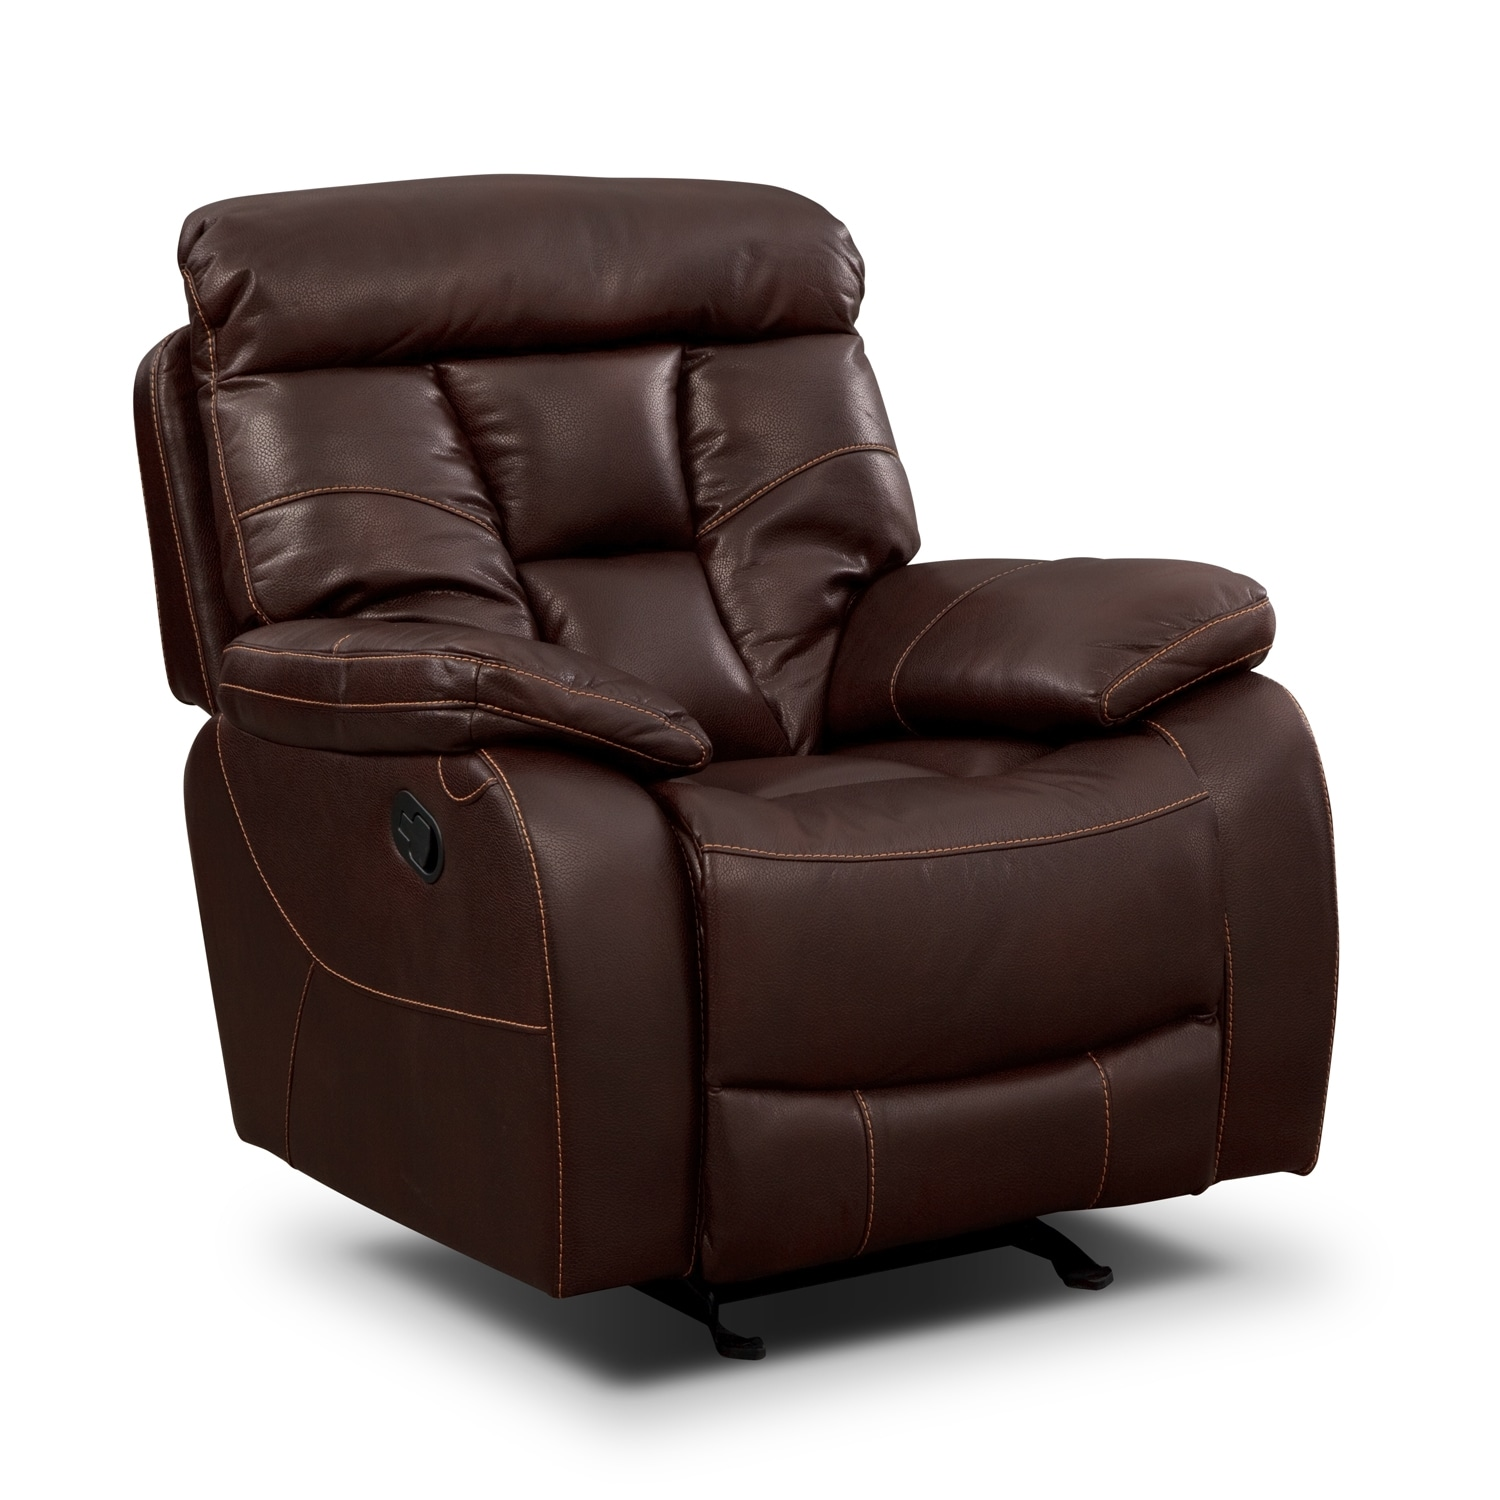 Living Room Furniture - Dakota Glider Recliner